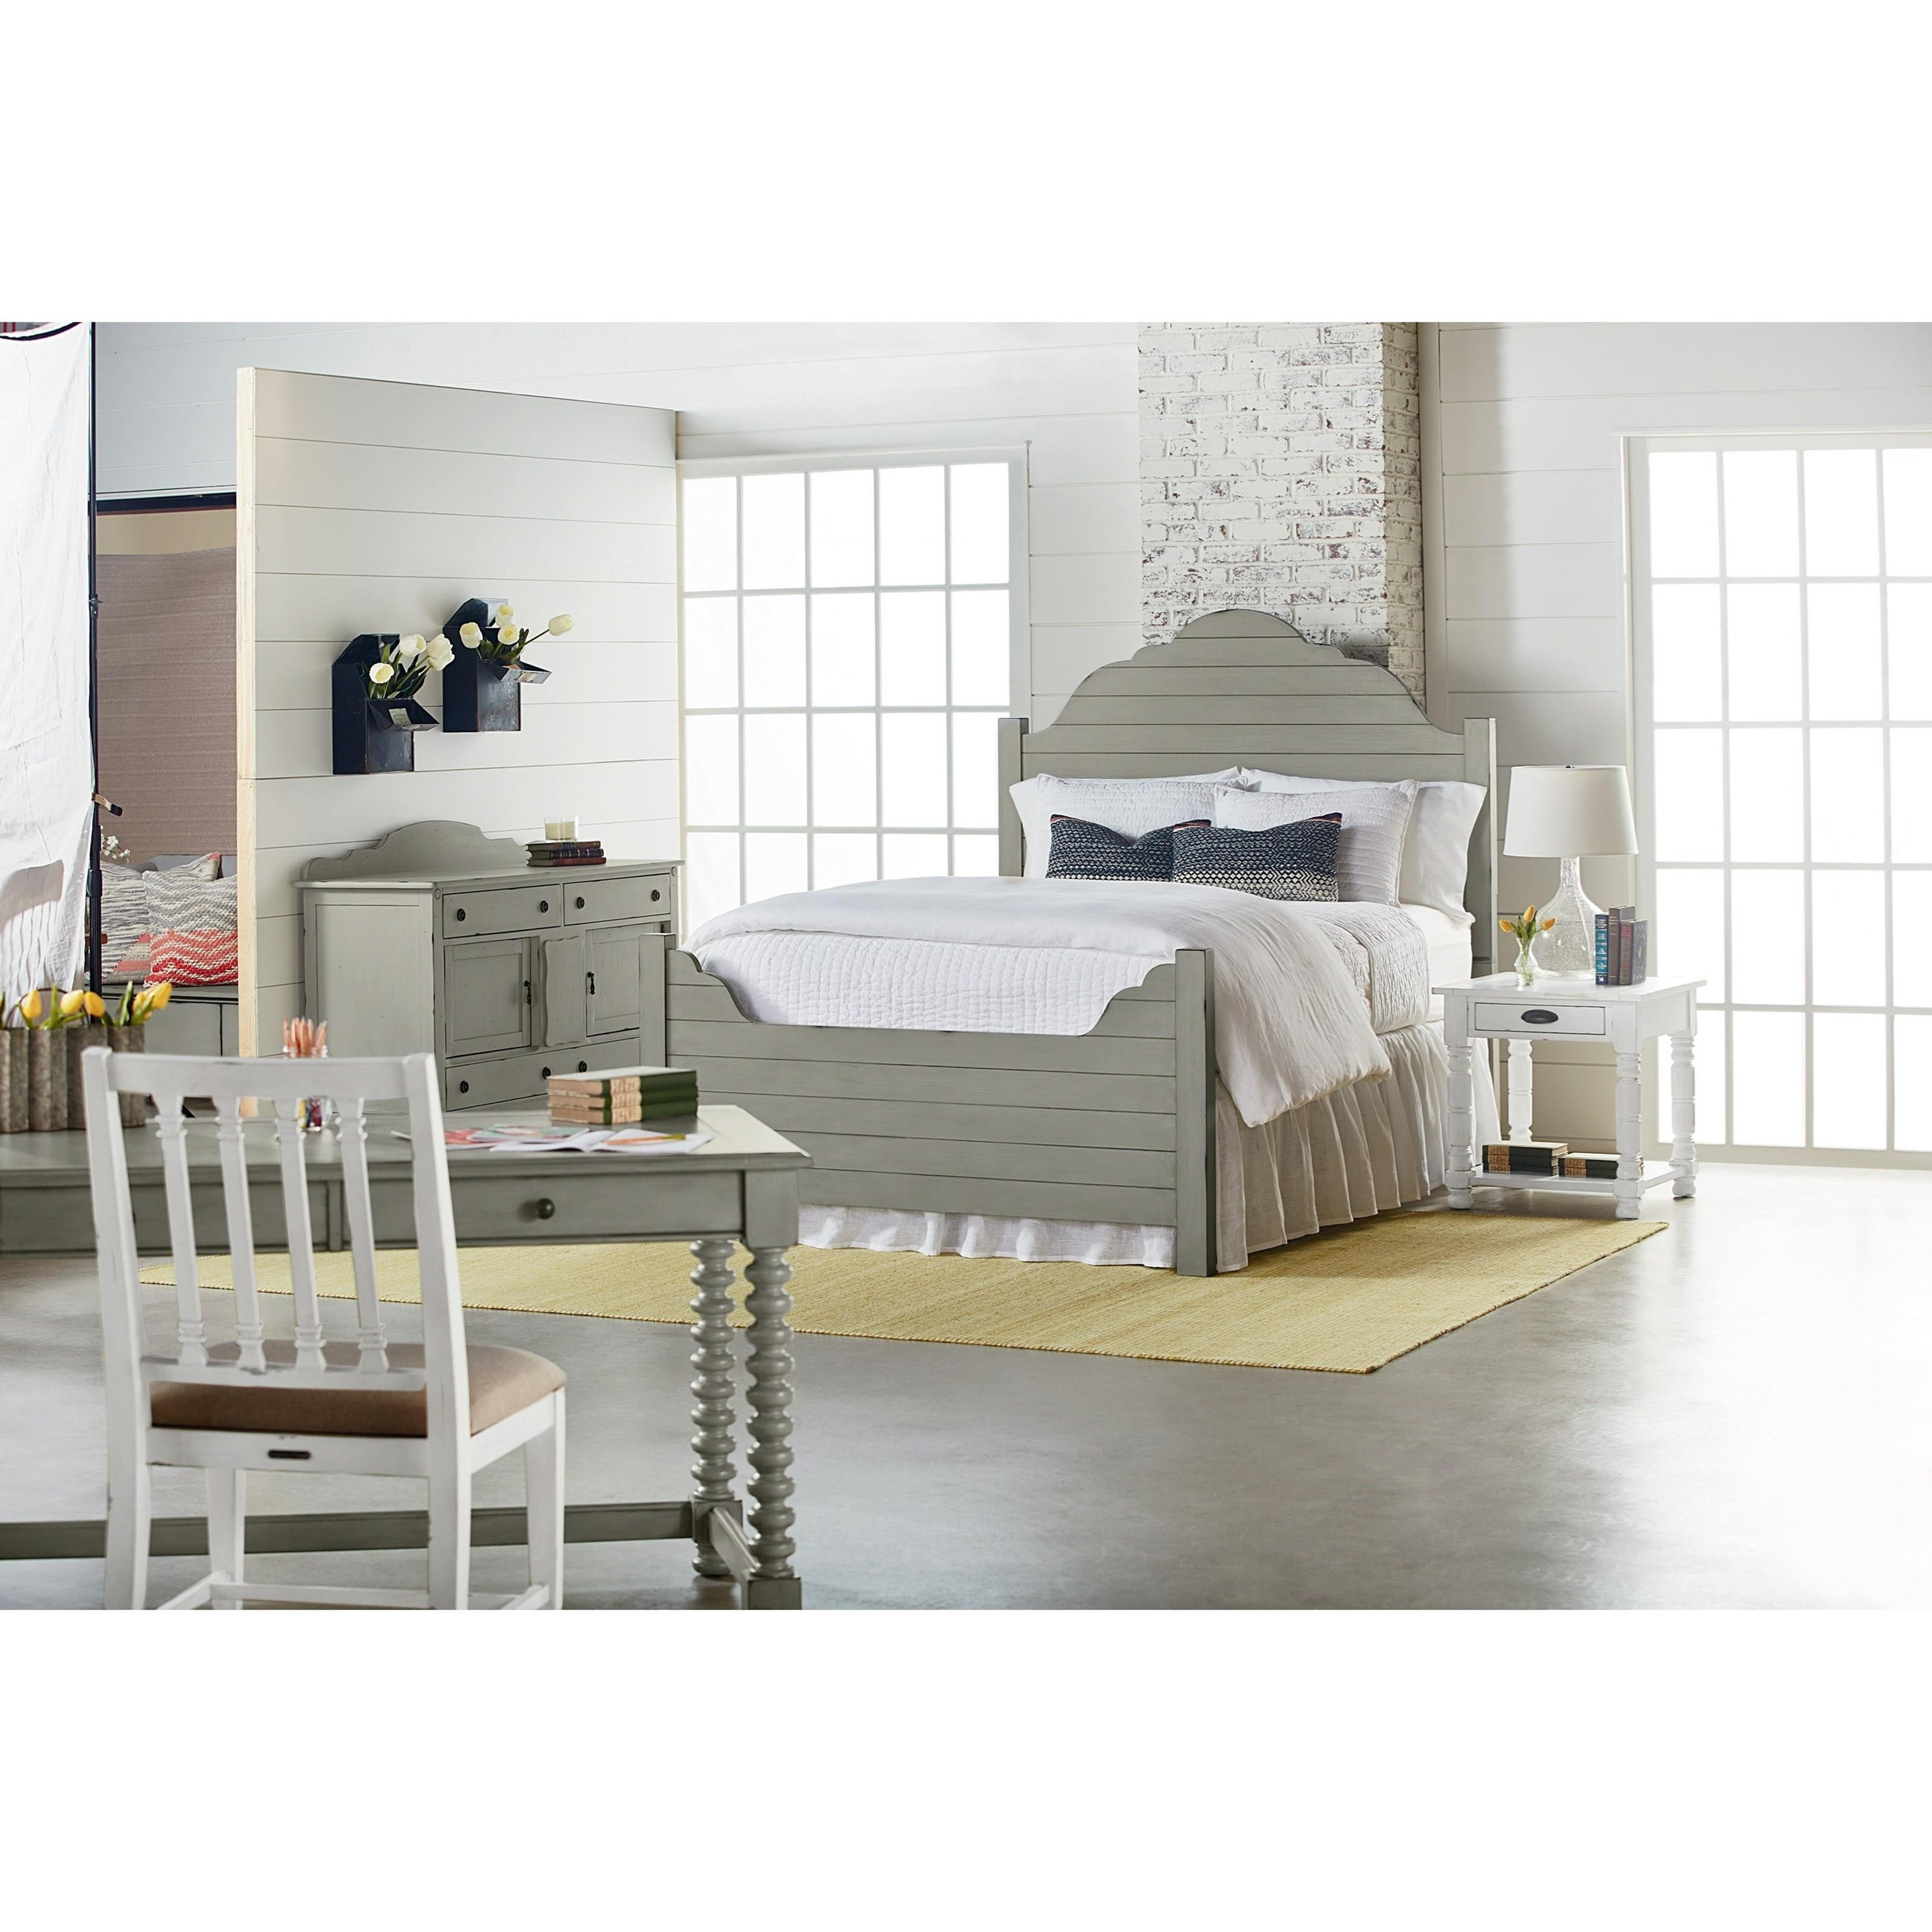 Silhouette Sideboard by Magnolia Home by Joanna Gaines